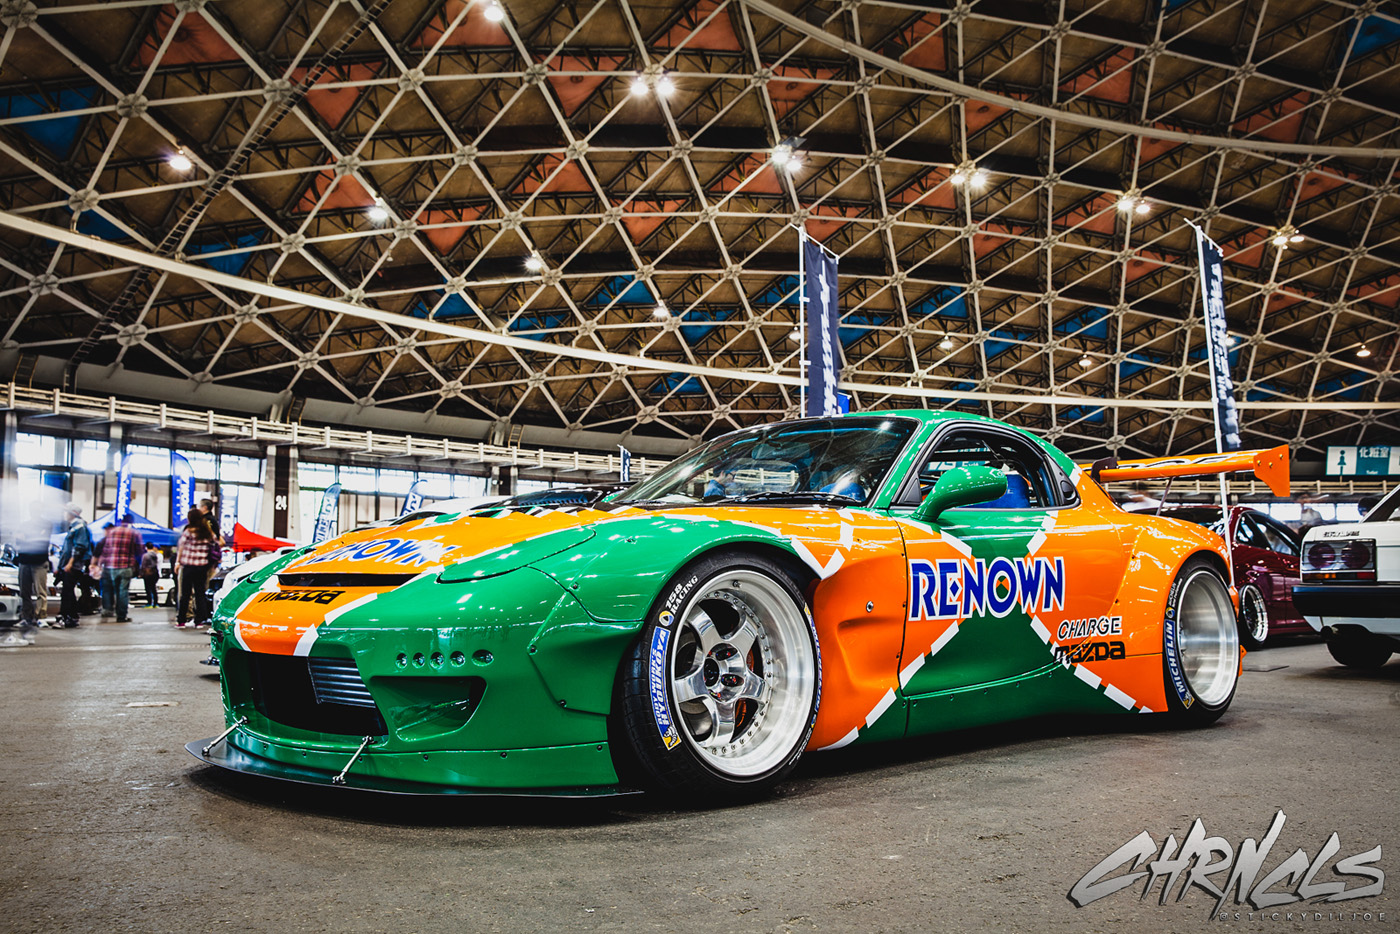 Wekfest Japan 2017 Coverage… Part 4…